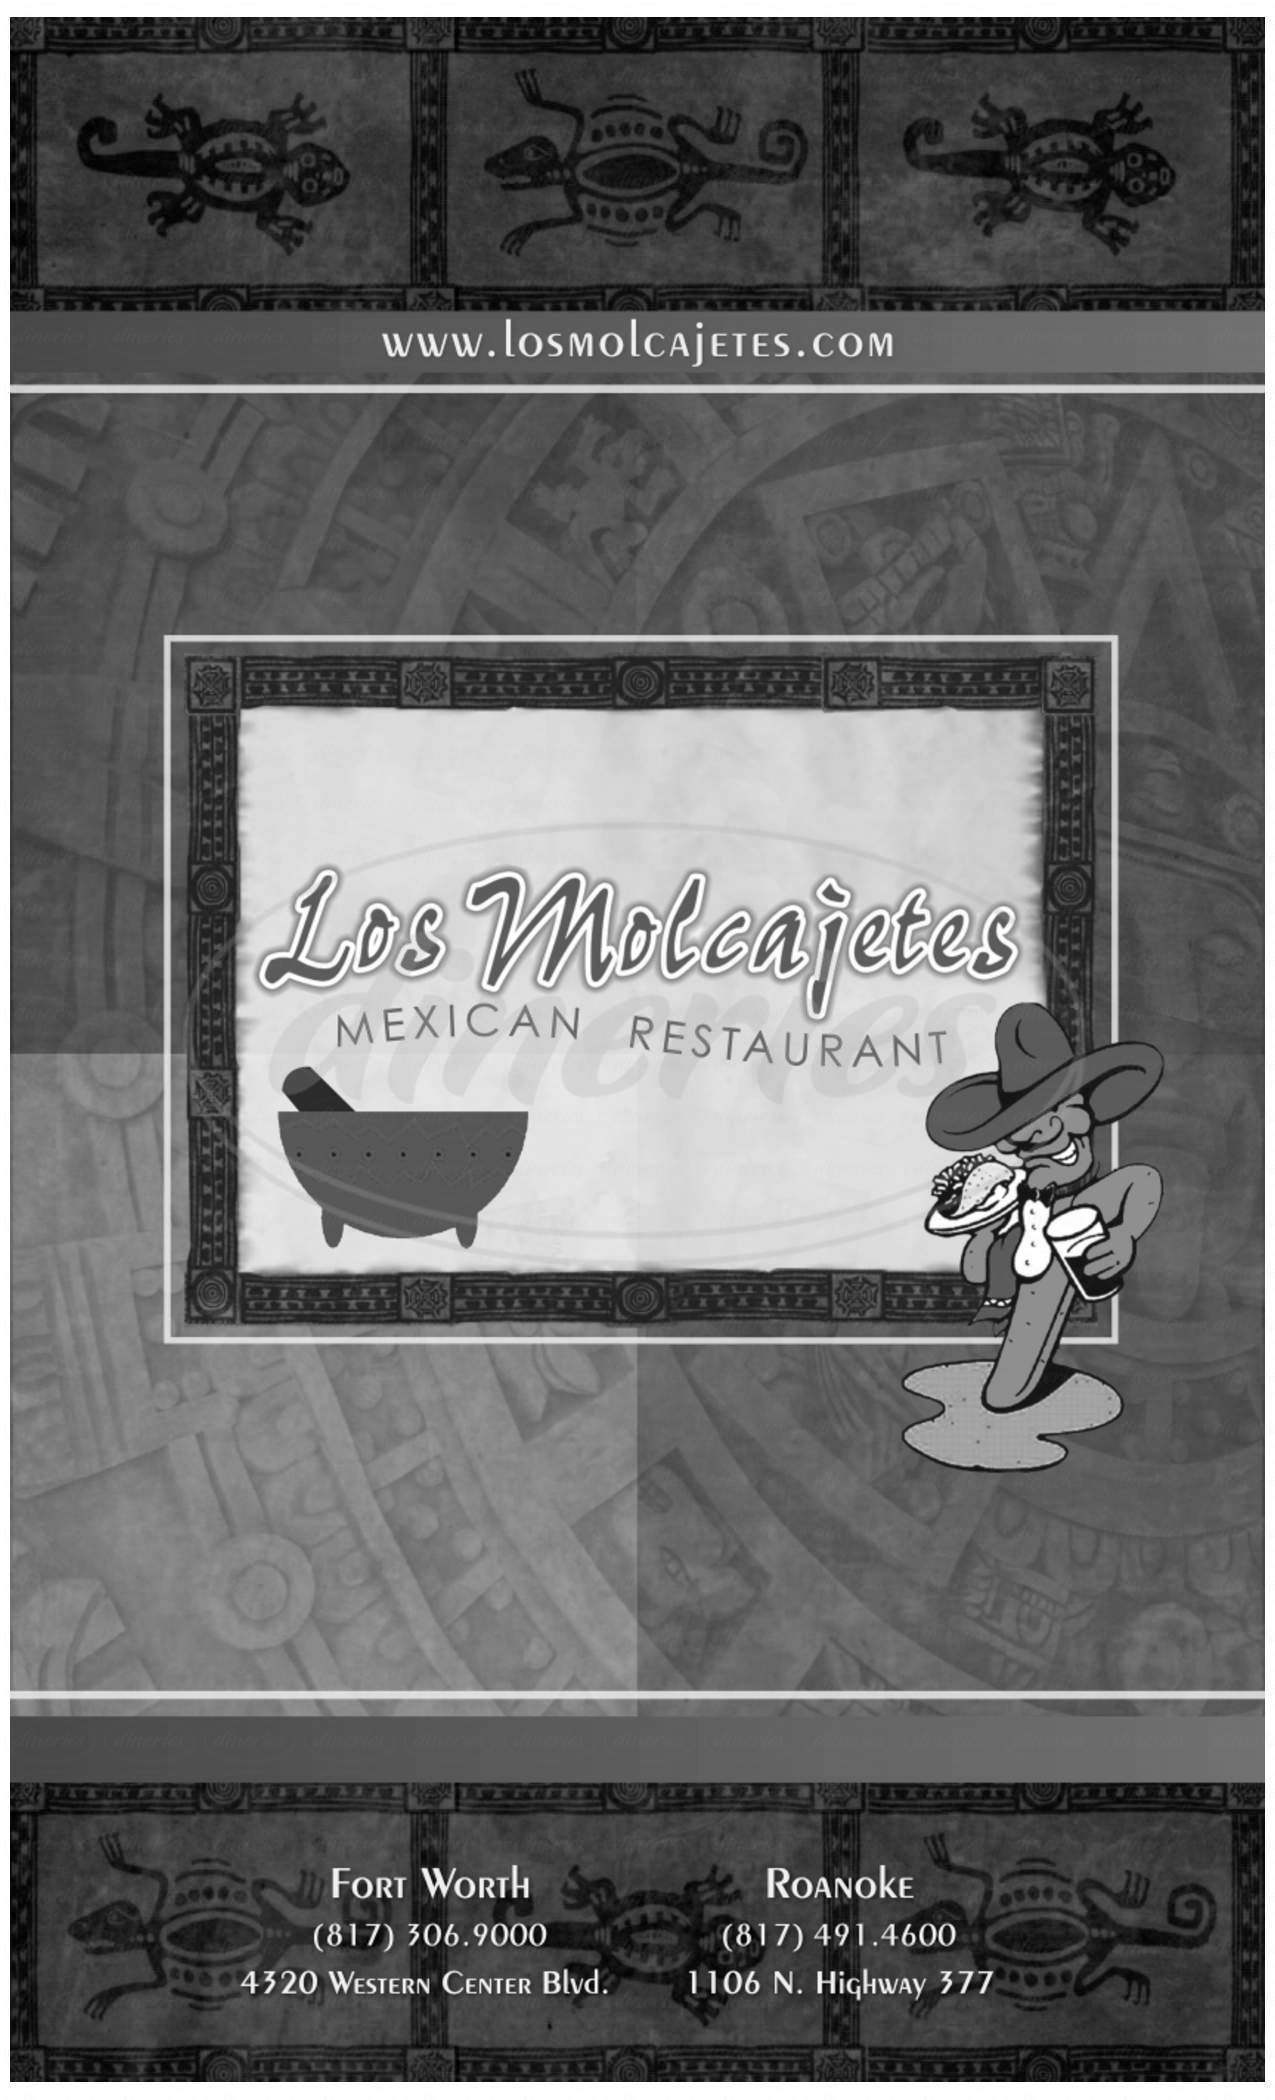 menu for Los Molcajetes Mexican Restaurant